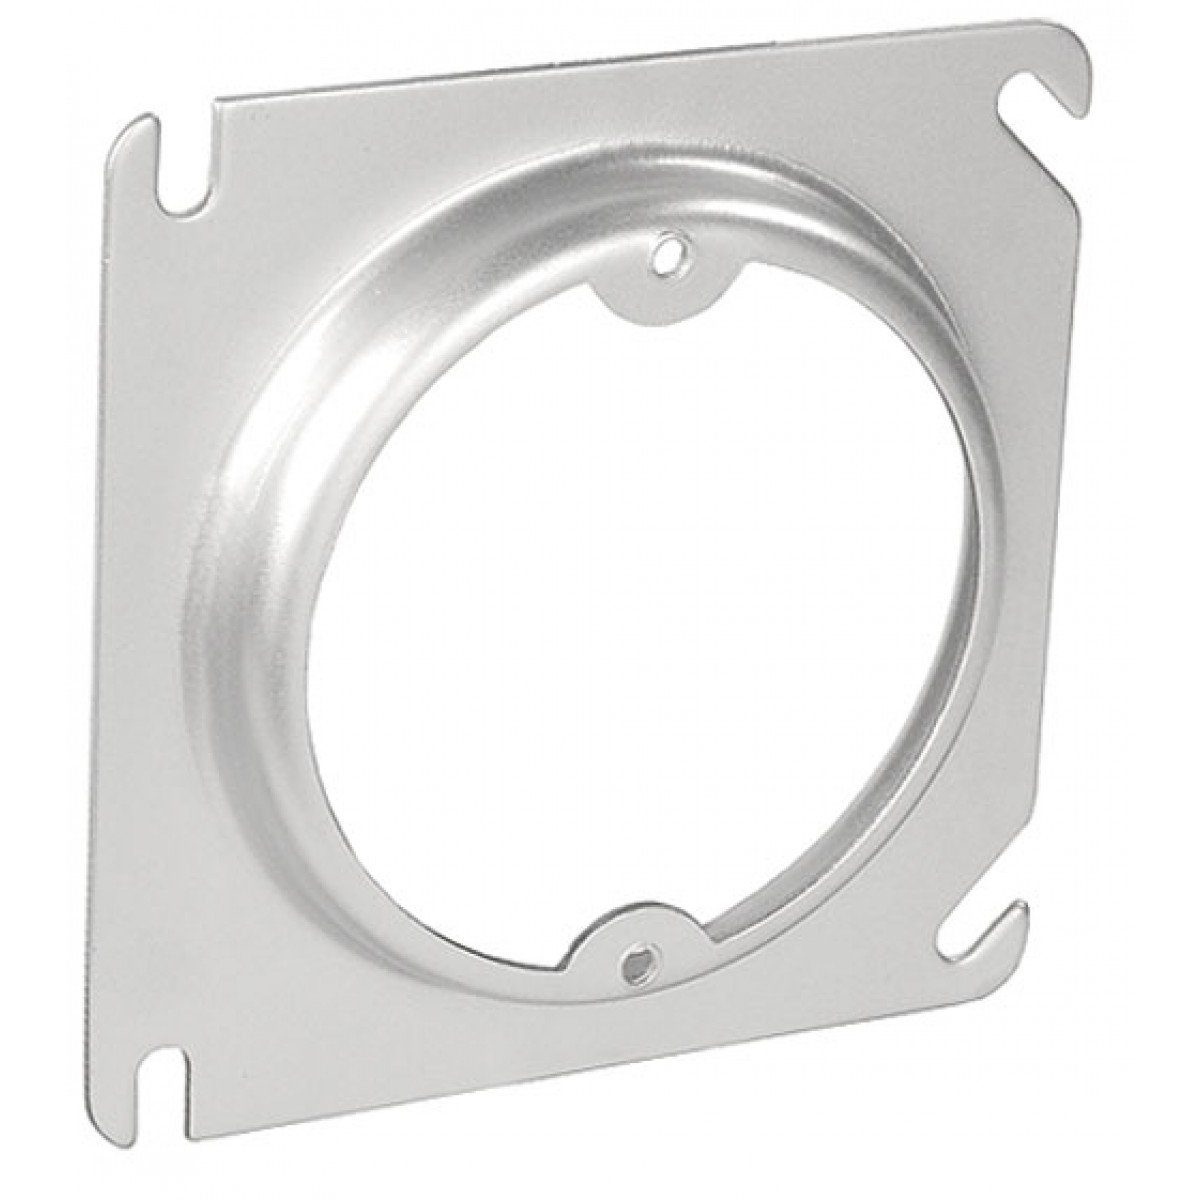 5 Pcs, 4'' Square to Round Device Ring, 1/2 In. Raised, .0625 Galvanized Steel Used to Mount Light Fixtures In Walls & Ceilings